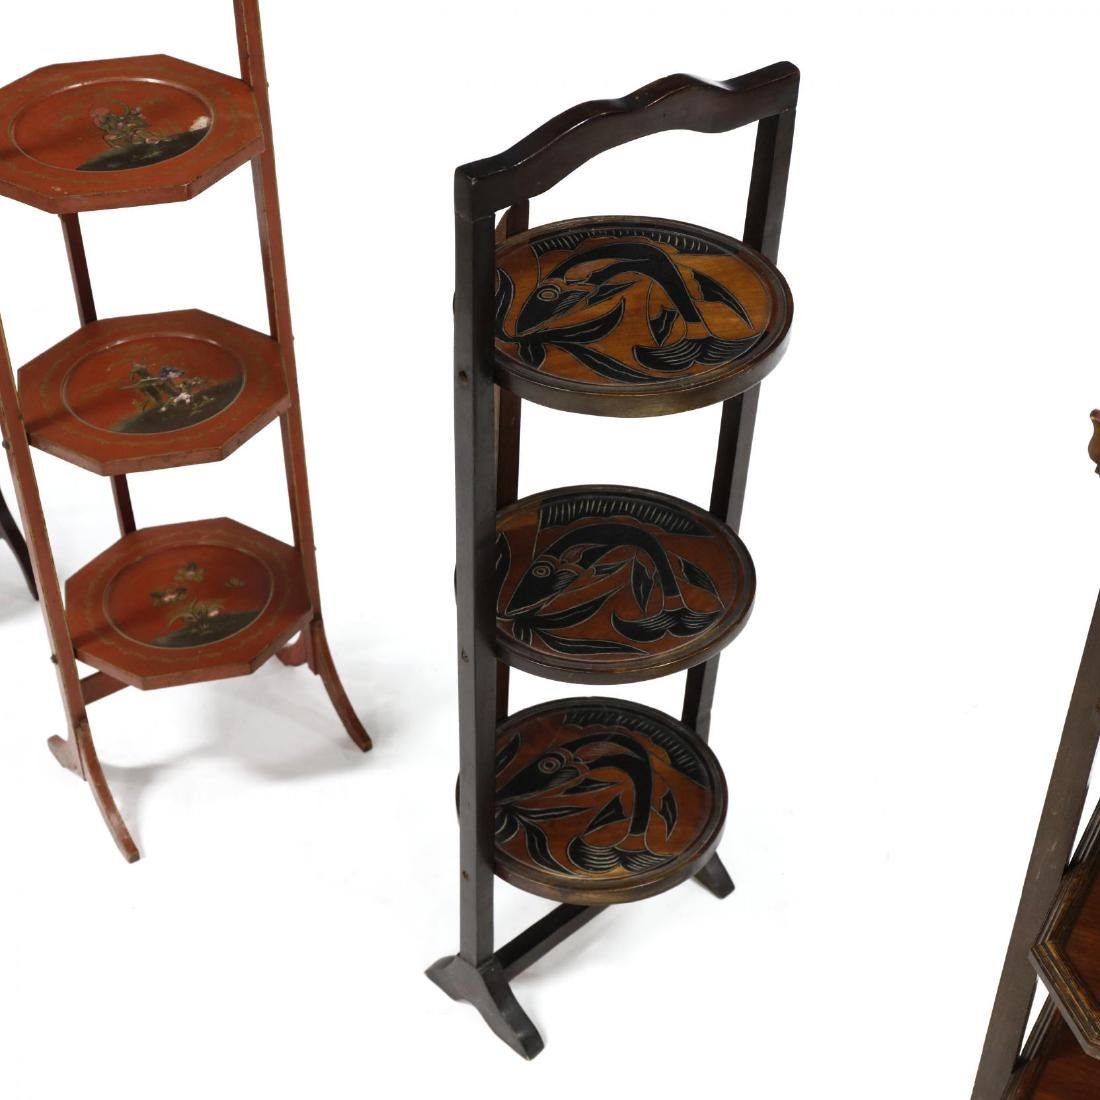 Four Vintage Muffin Stands - 3